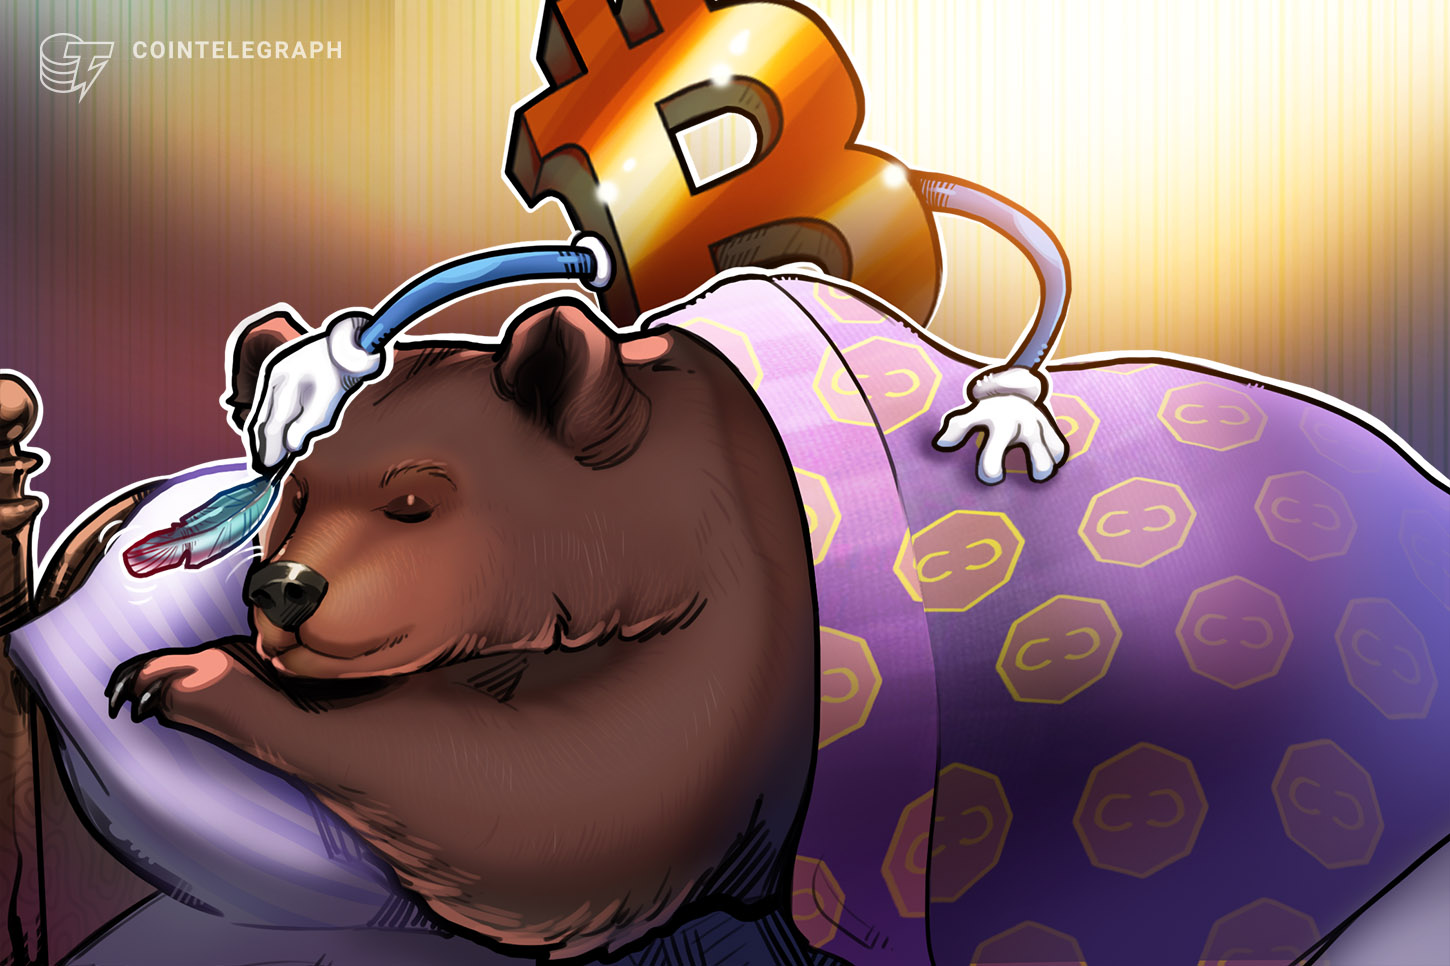 Bitcoin price stalls in April, but $4.2B options expiry may revive run